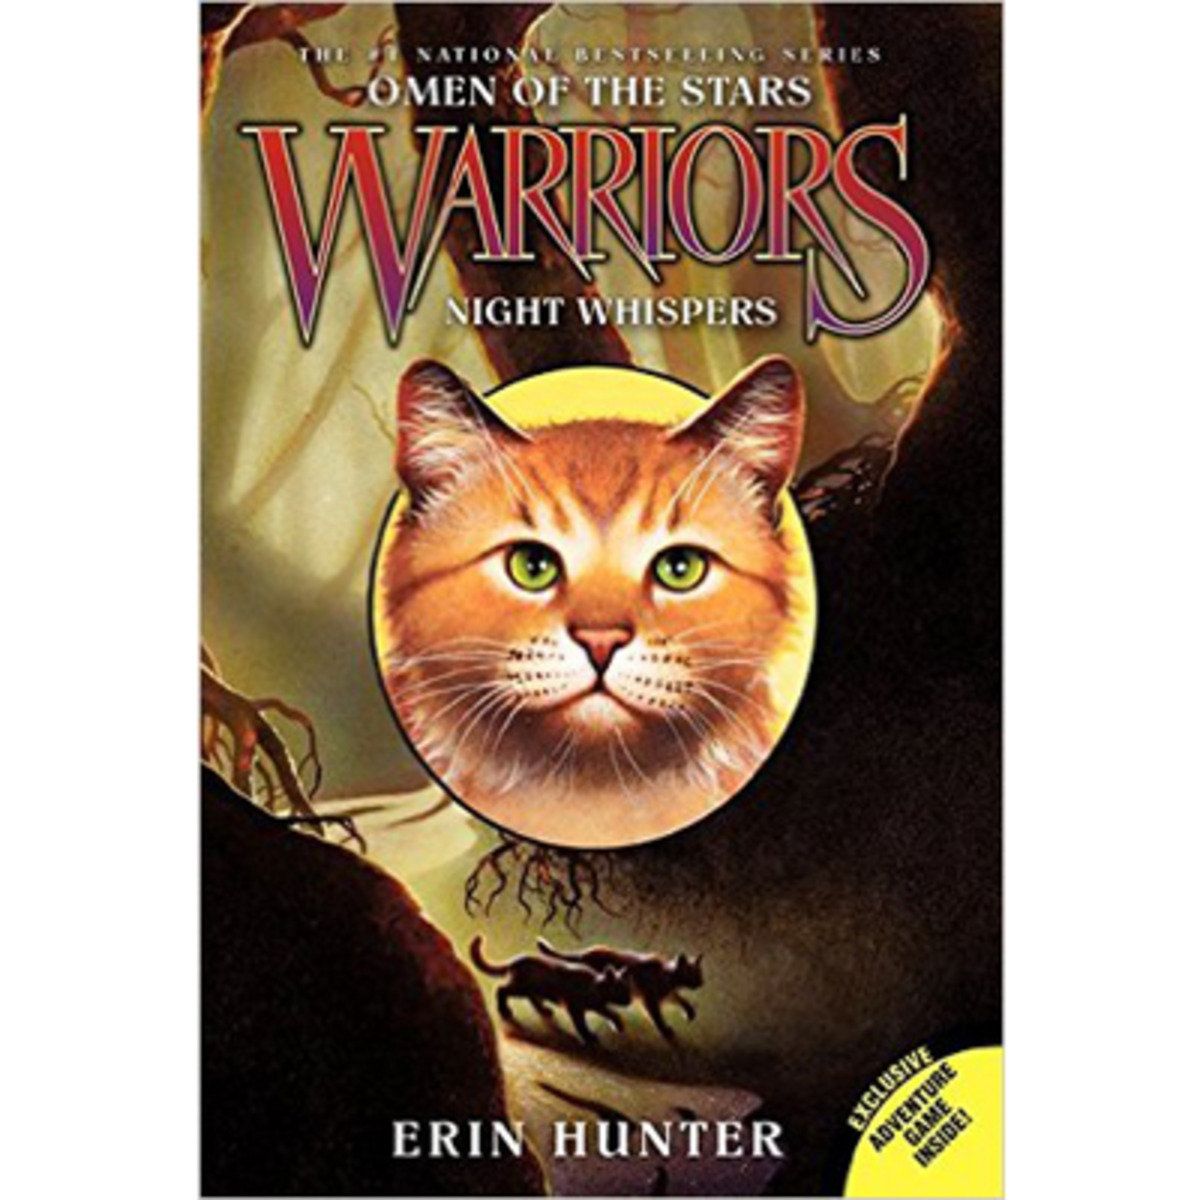 WARRIORS: NIGHT WHISPERS 9780061555176